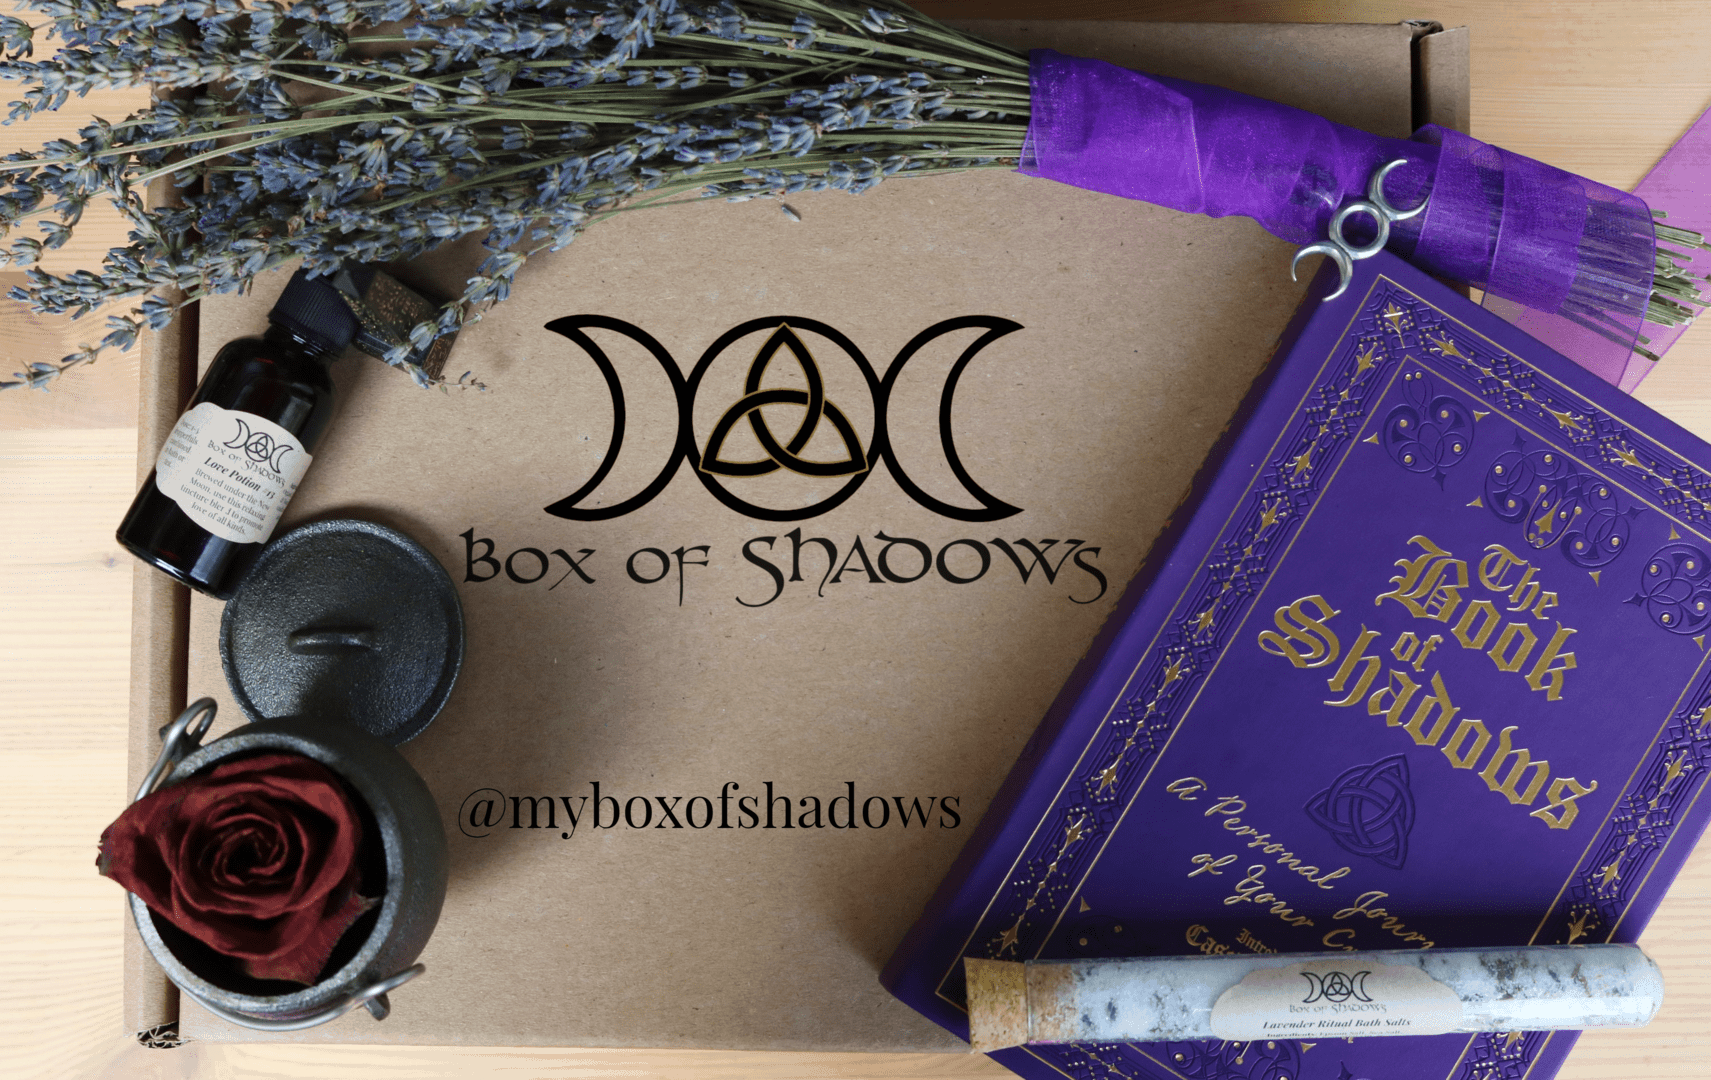 Box of Shadows Black Friday Deal: Get 15% off All Orders!